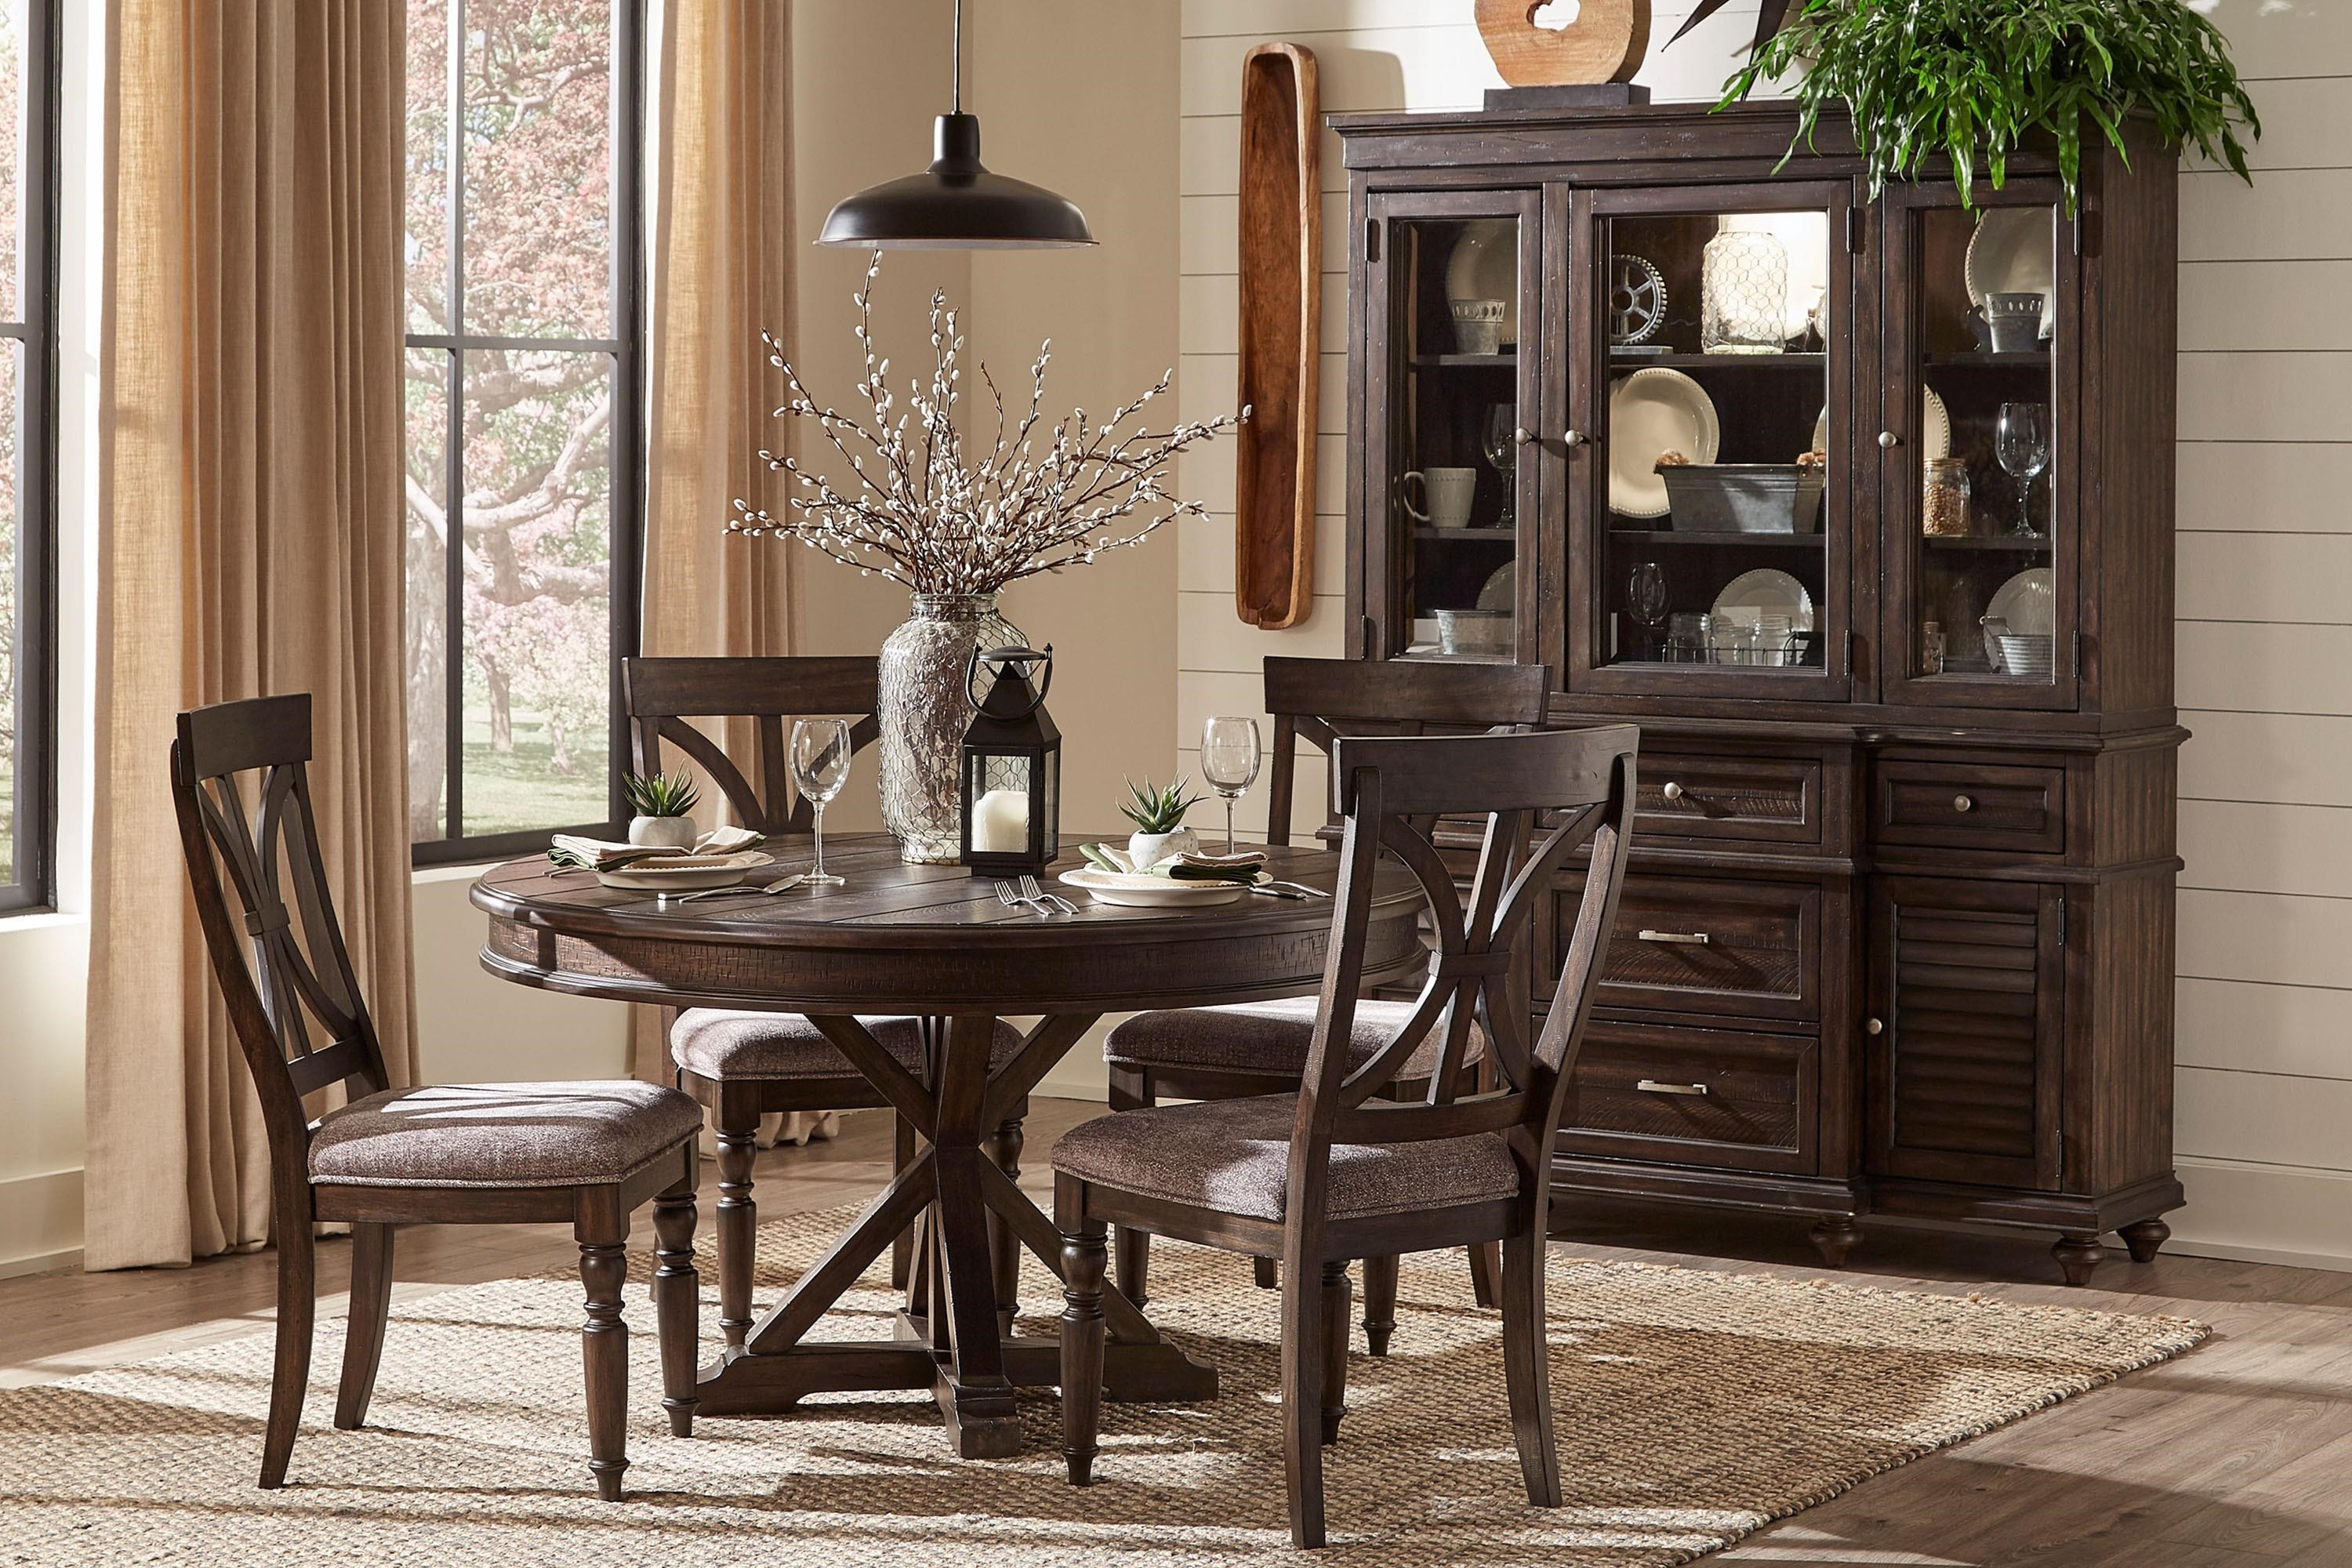 Cardano 5-Piece Round Dining Table by Homelegance at Beck's Furniture